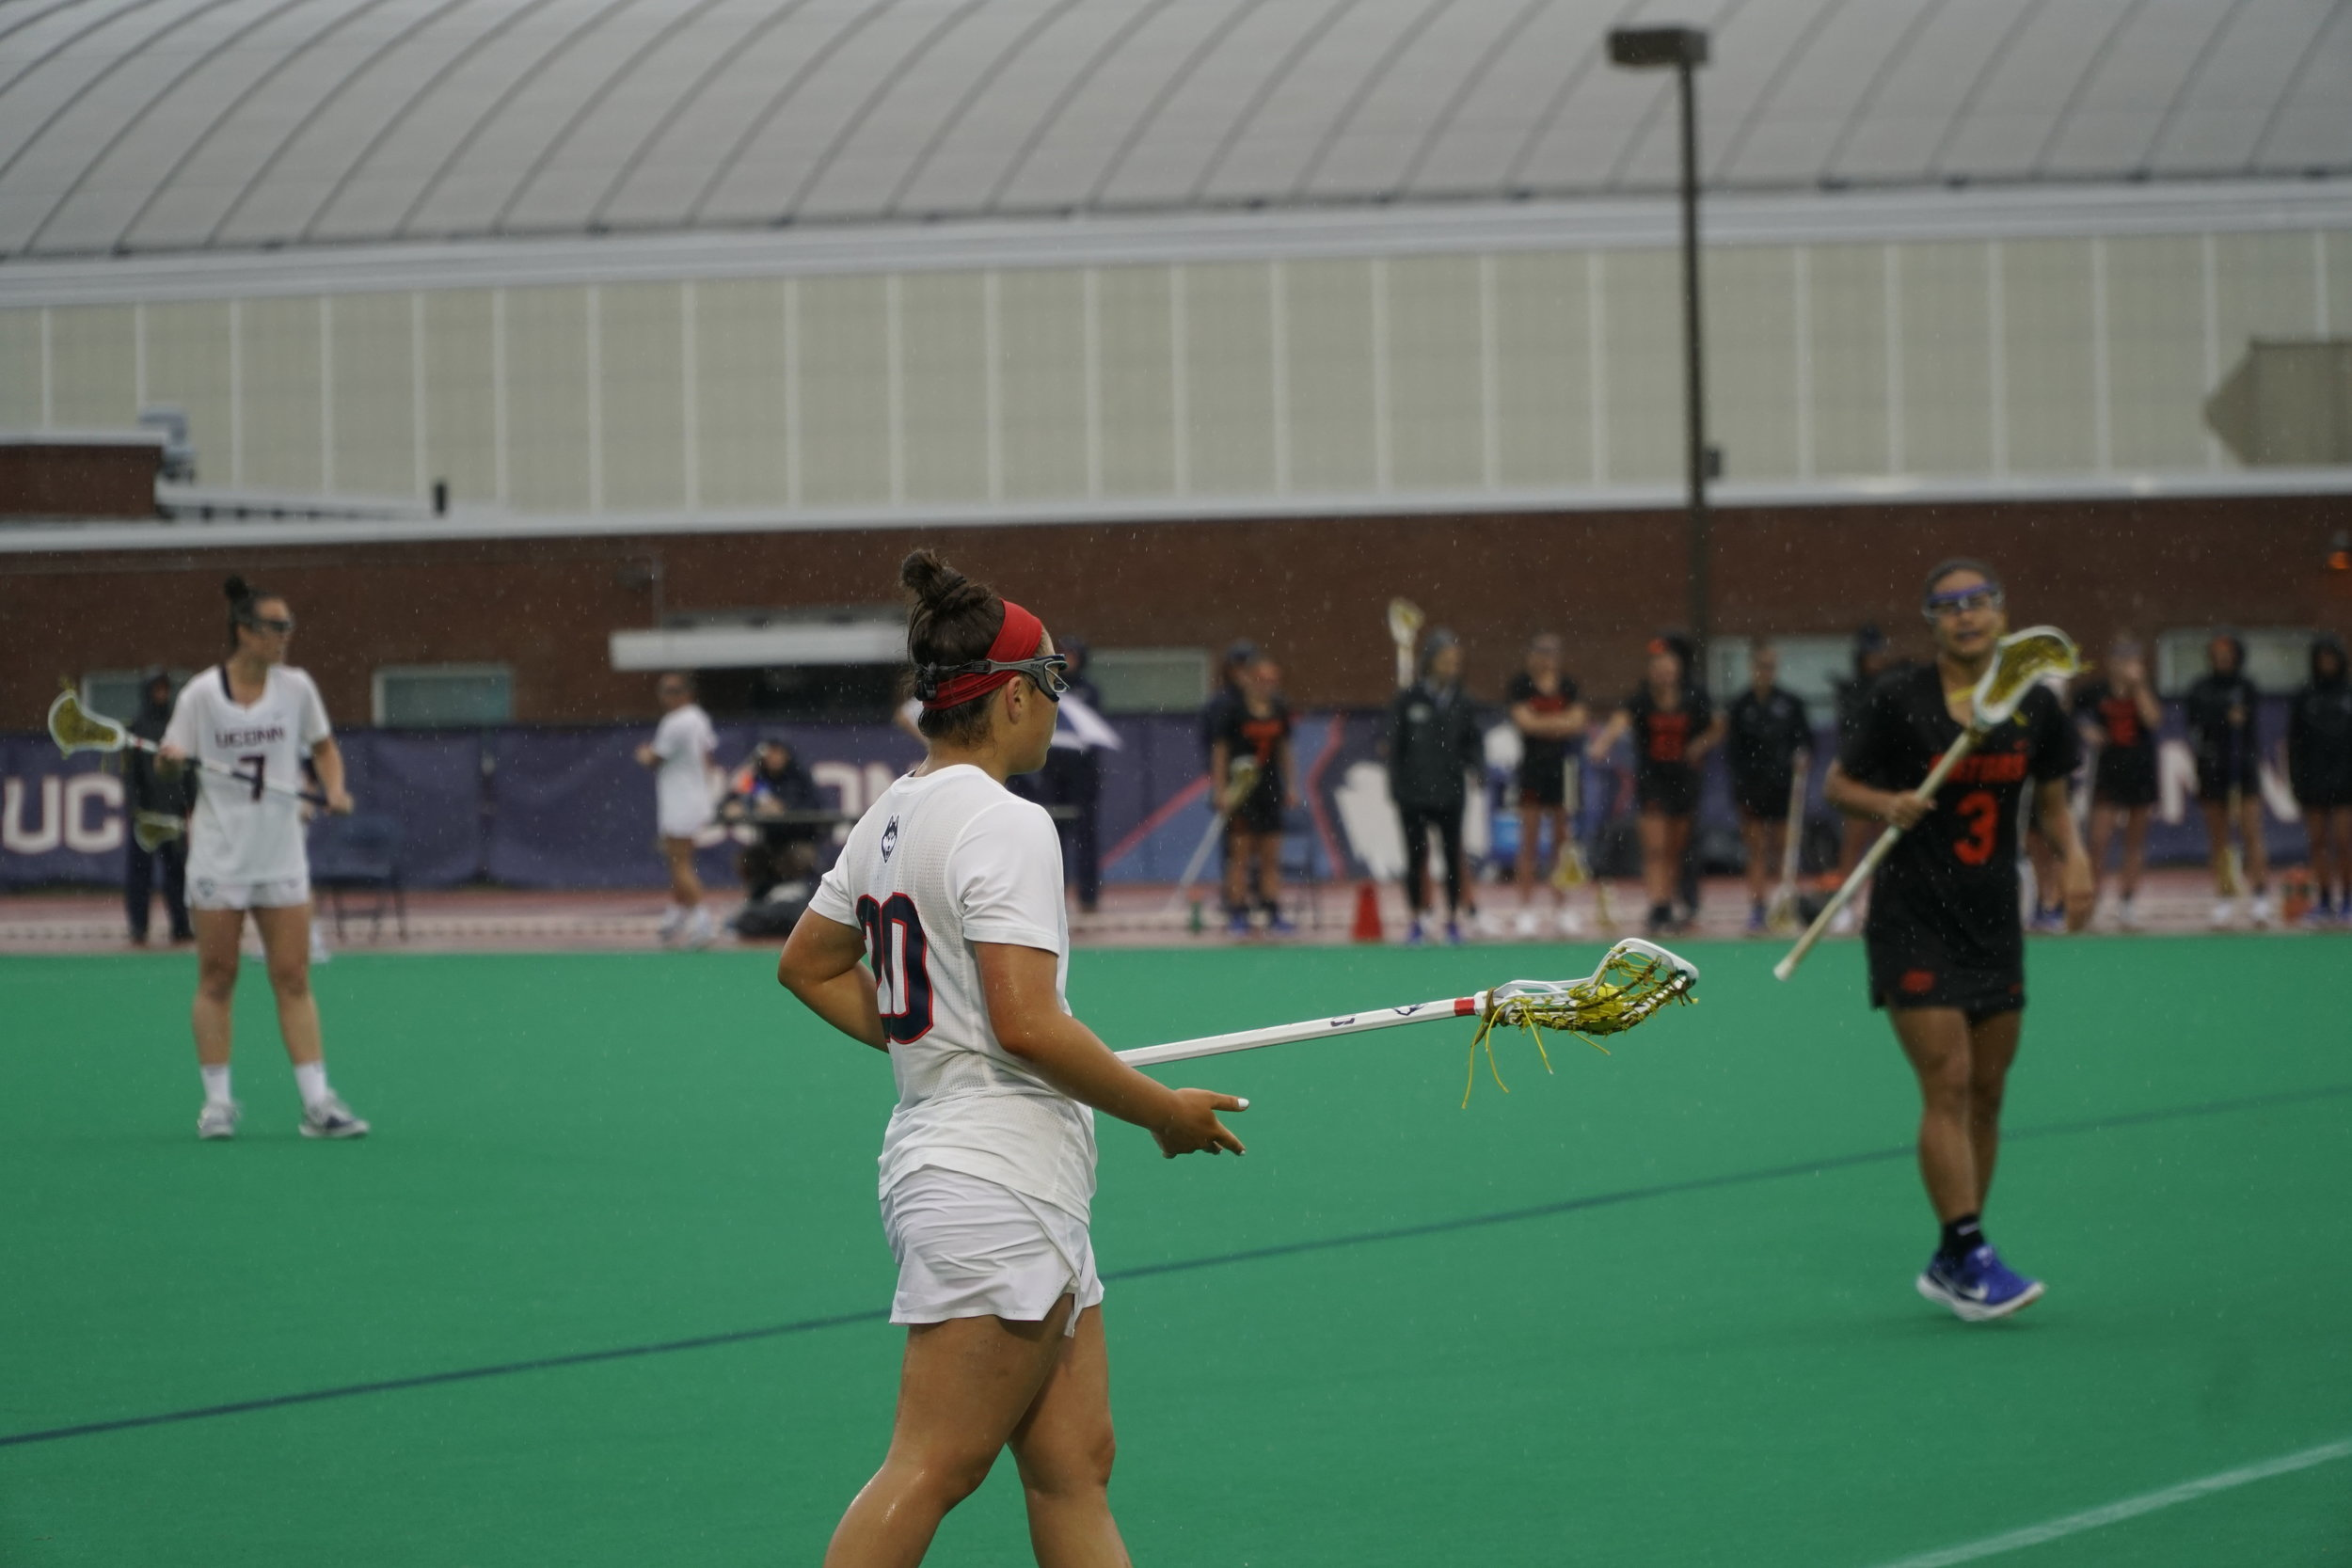 The UConn women's lacrosse team ended the season with a perfect game. (Eric Wang/The Daily Campus)